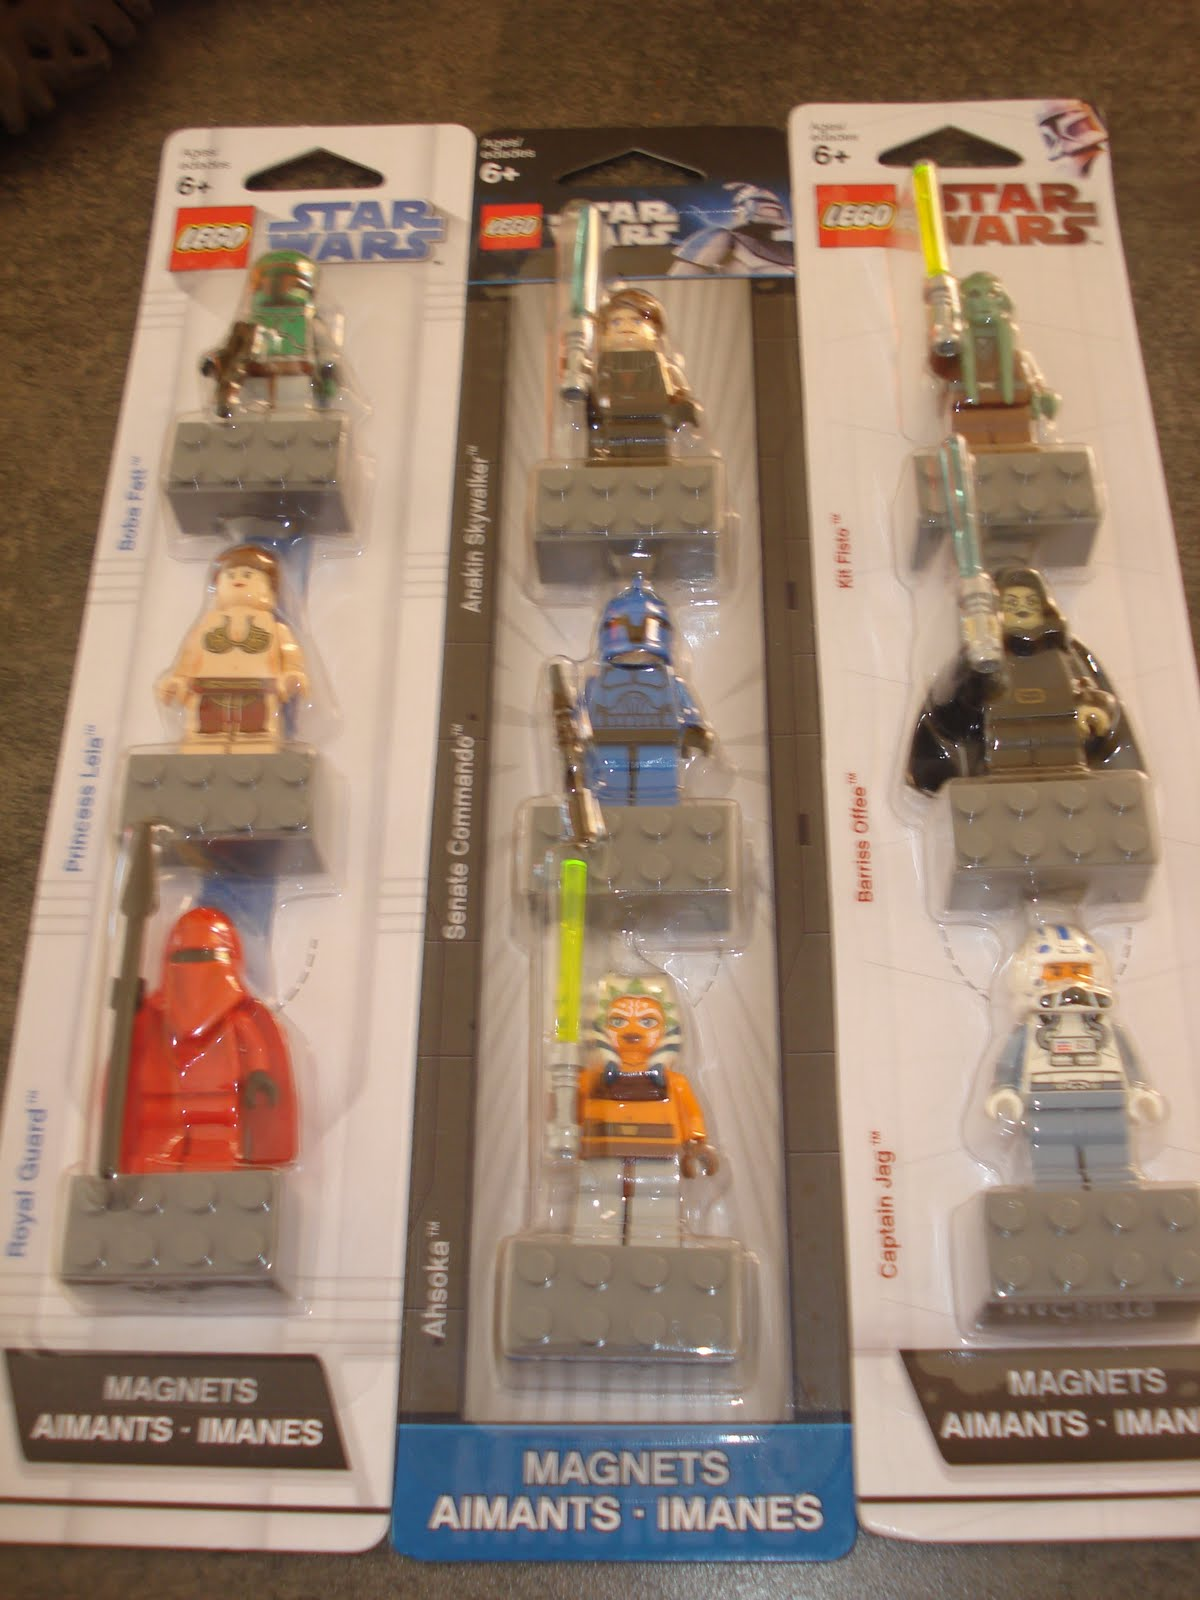 Personnage star wars lego mon univers star wars en lego attakus et autre - Lego star wars personnage ...